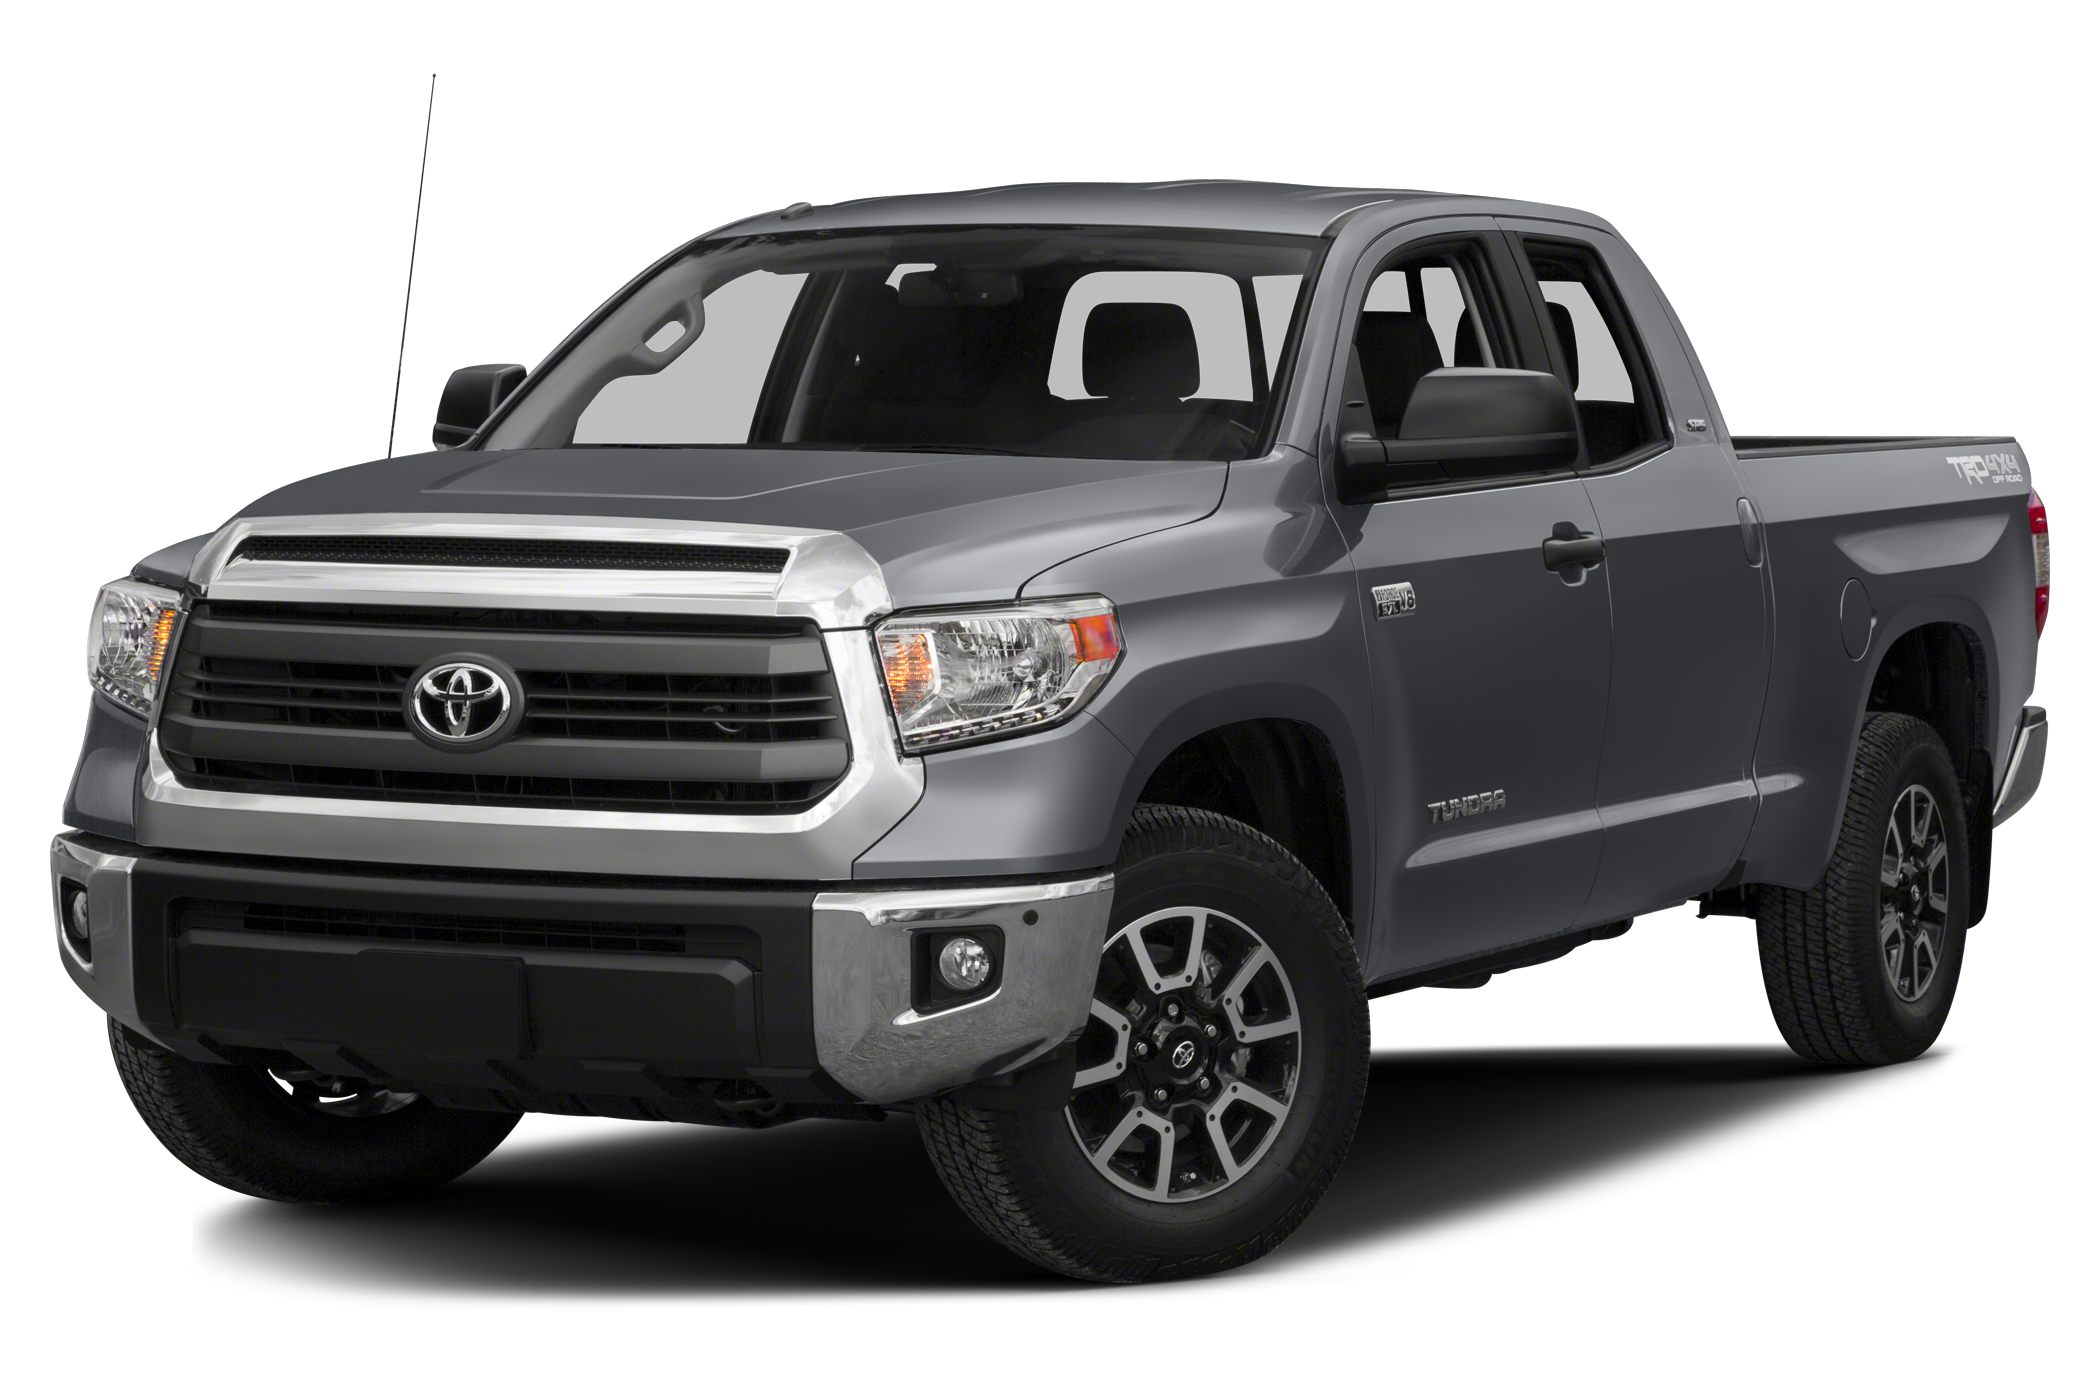 2015 Toyota Tundra Limited Crew Cab Pickup for sale in Mobile for $46,171 with 0 miles.